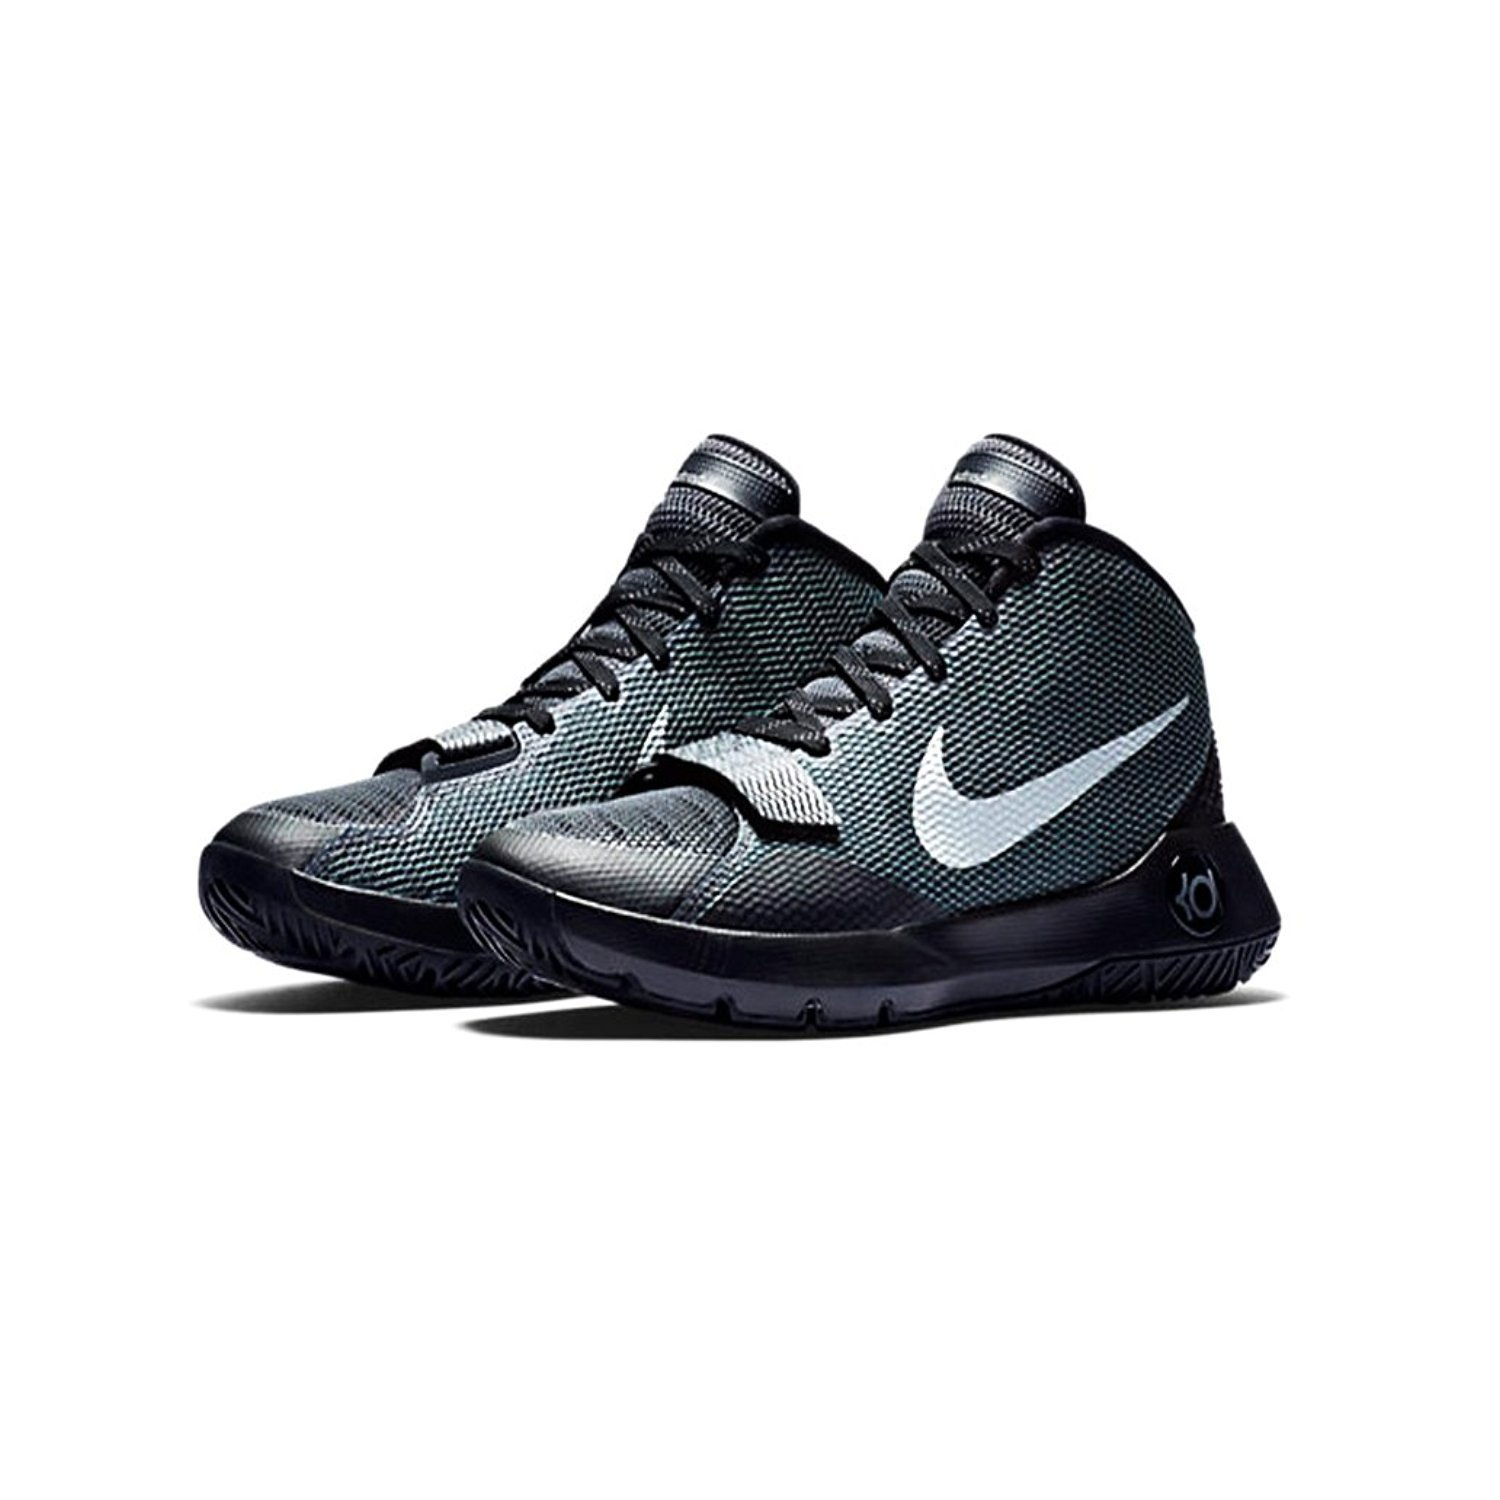 97b227214963 Get Quotations · Nike Mens KD Trey5III Black Anthracite Dark Grey M.Silver  Basketball Shoes 8